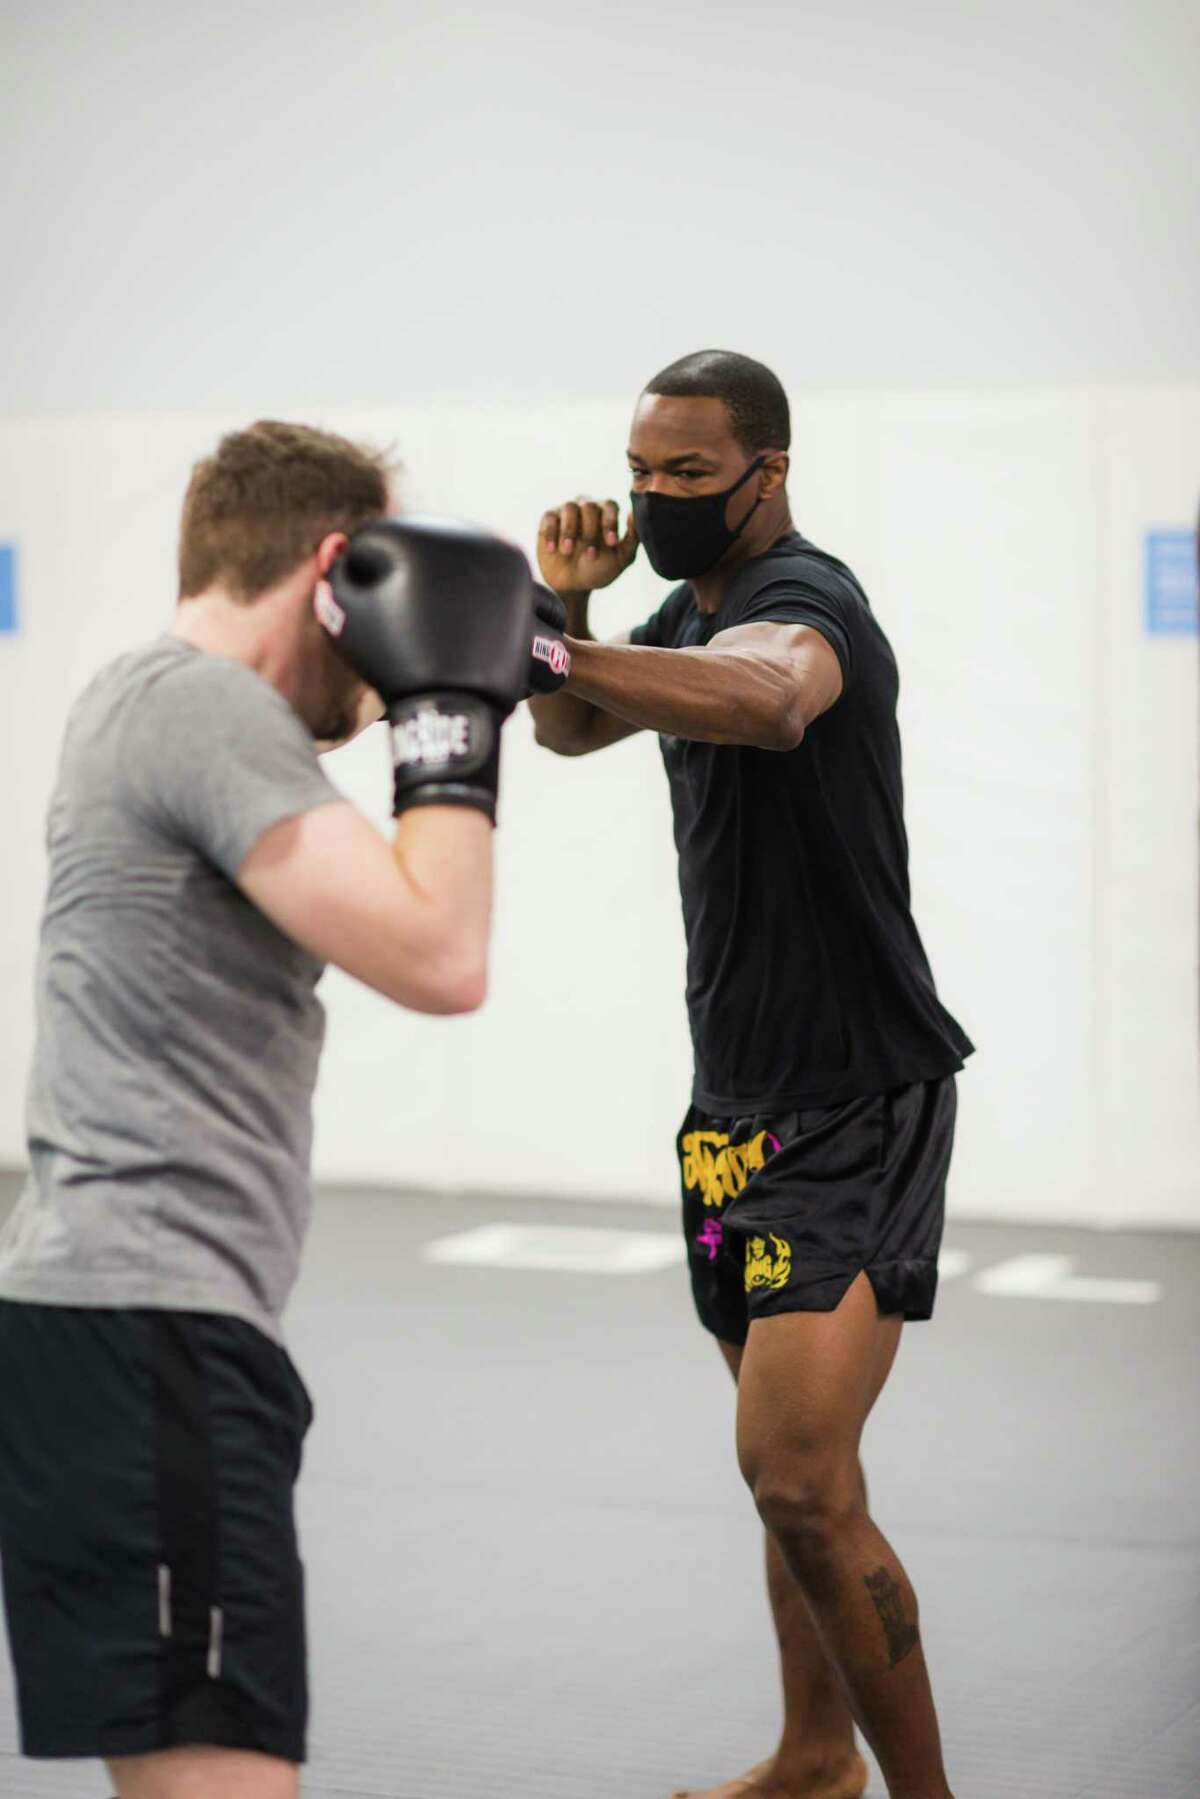 Ravlin Martial Arts & Fitness owner and head instructor Angelus McFarlane spars with a client